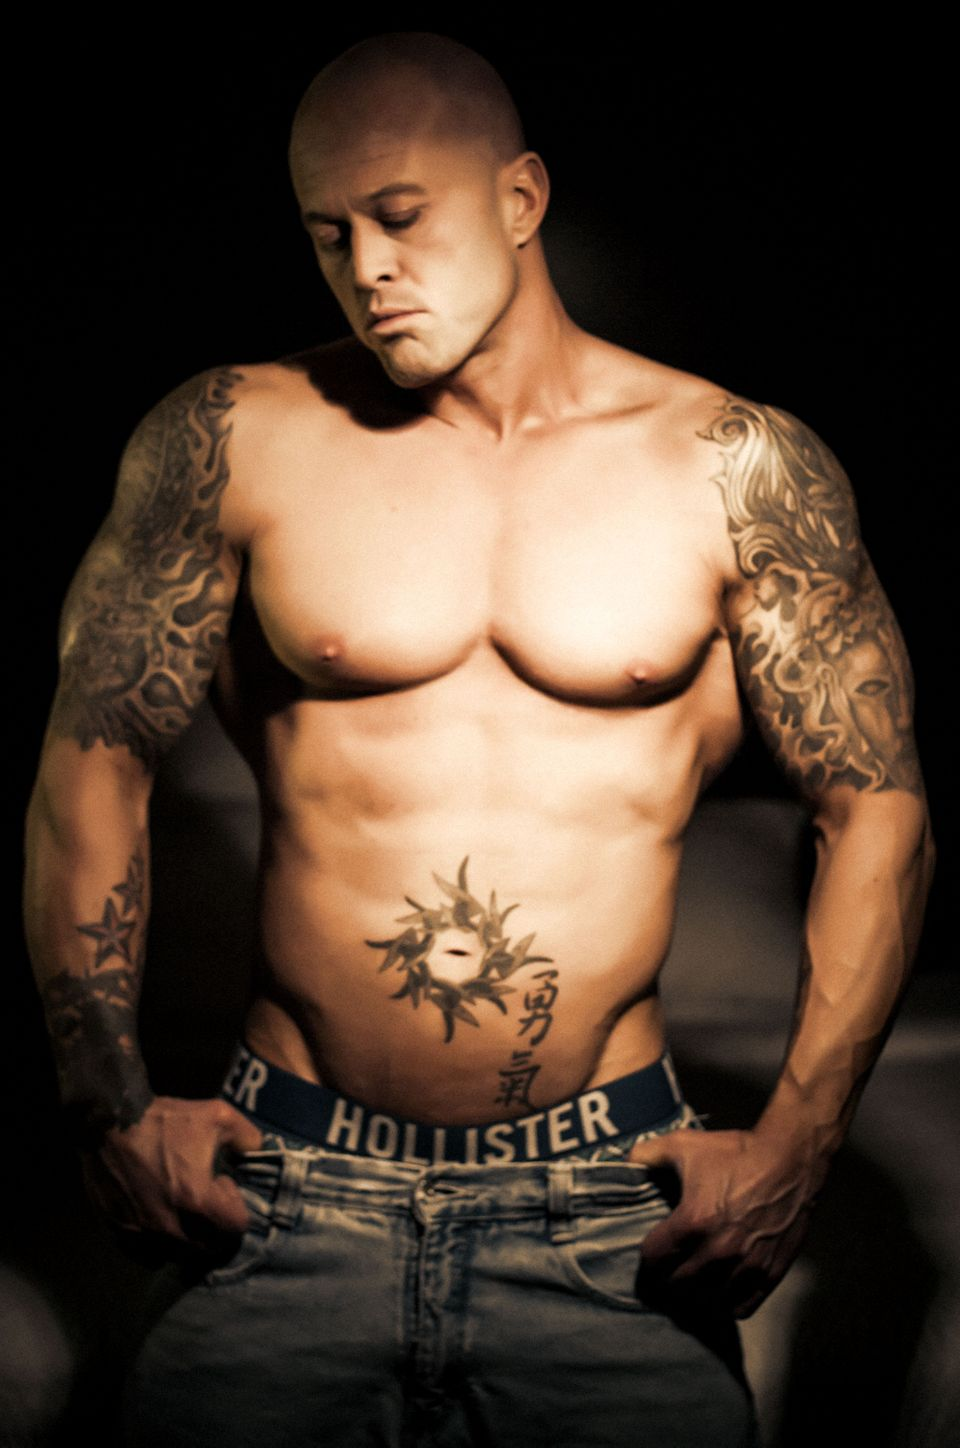 Tattooed Model & Actor John Joseph Quinlan by Brianna Oliveira #JohnQuinlan